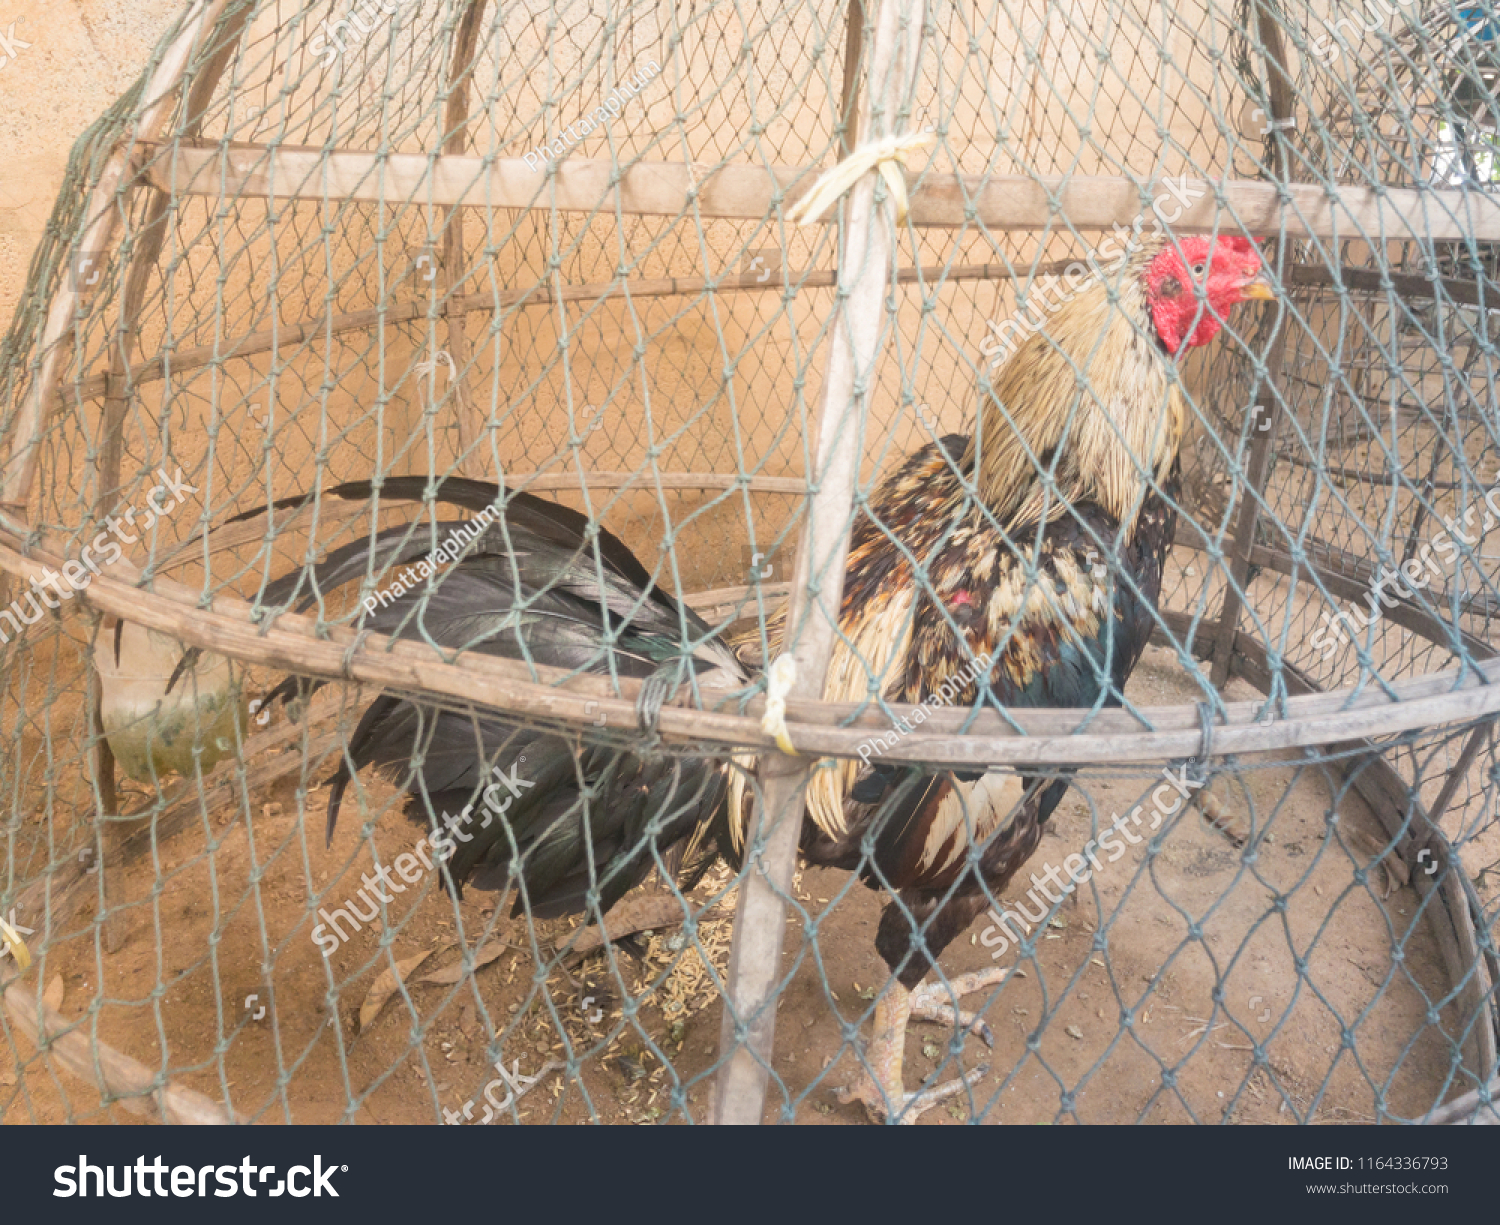 Cock to cock fencing